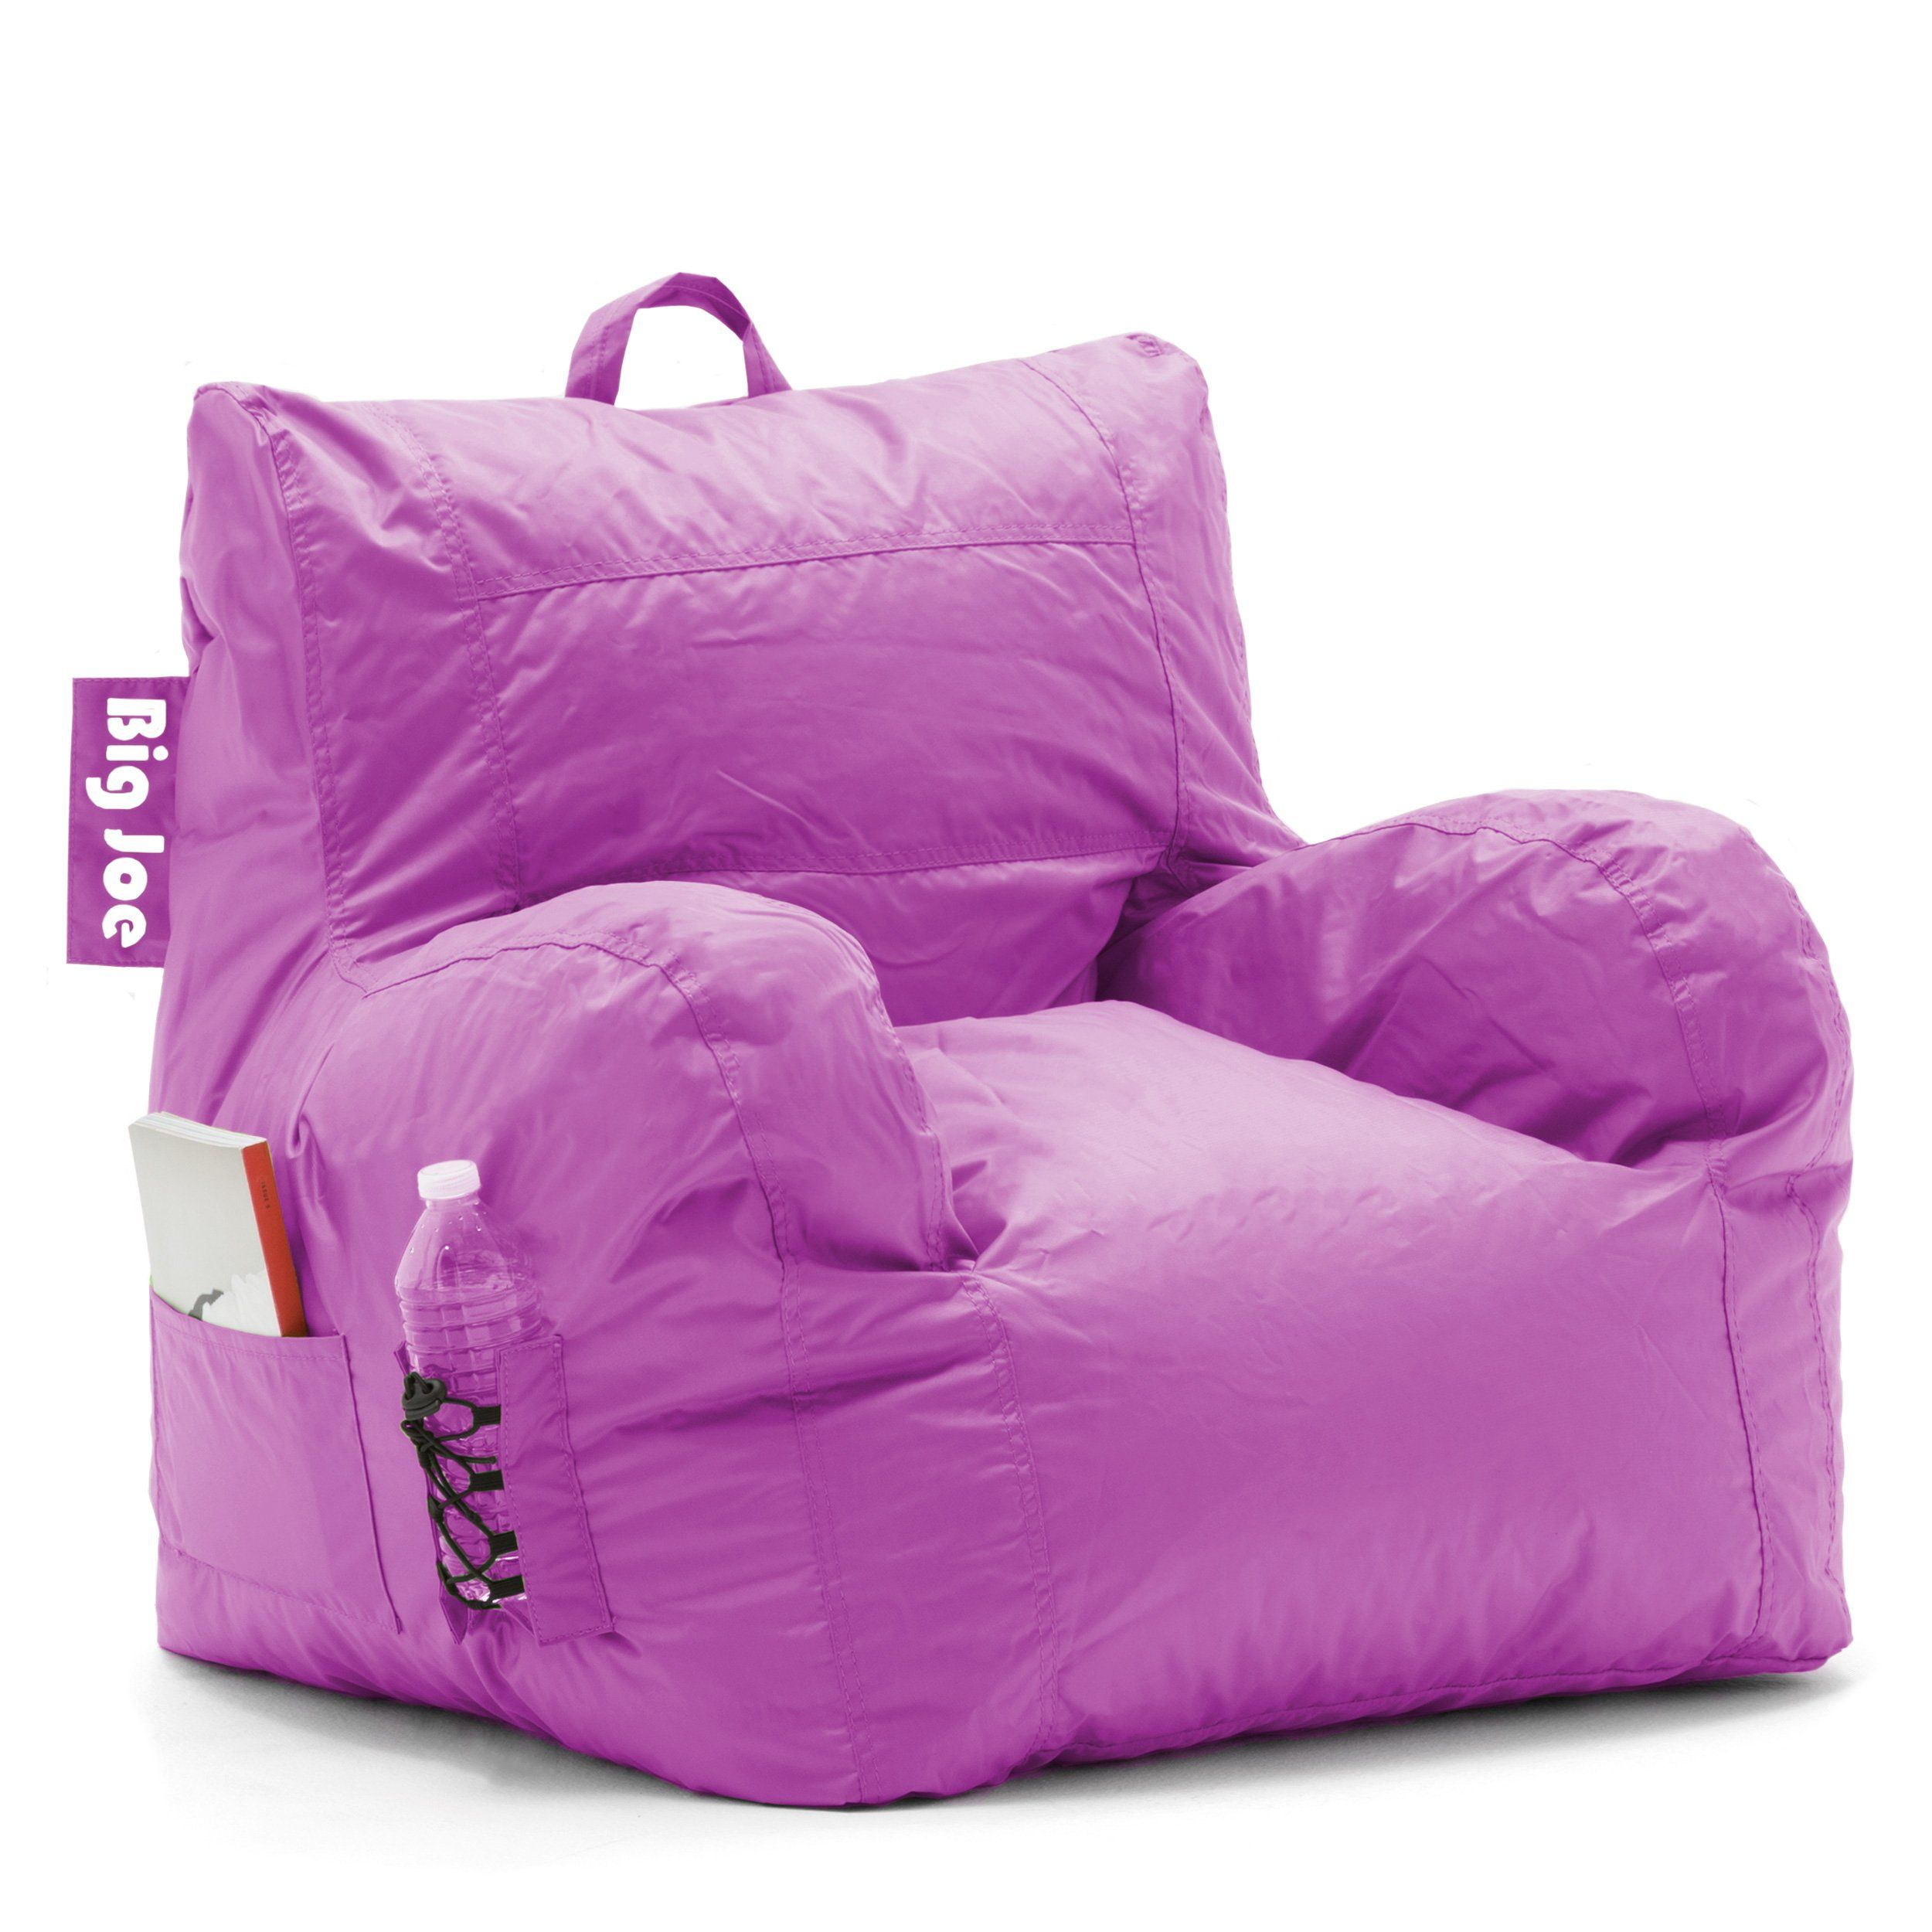 Surprising Big Joe Dorm Bean Bag Chair Radiant Orchid You Can Find Pabps2019 Chair Design Images Pabps2019Com